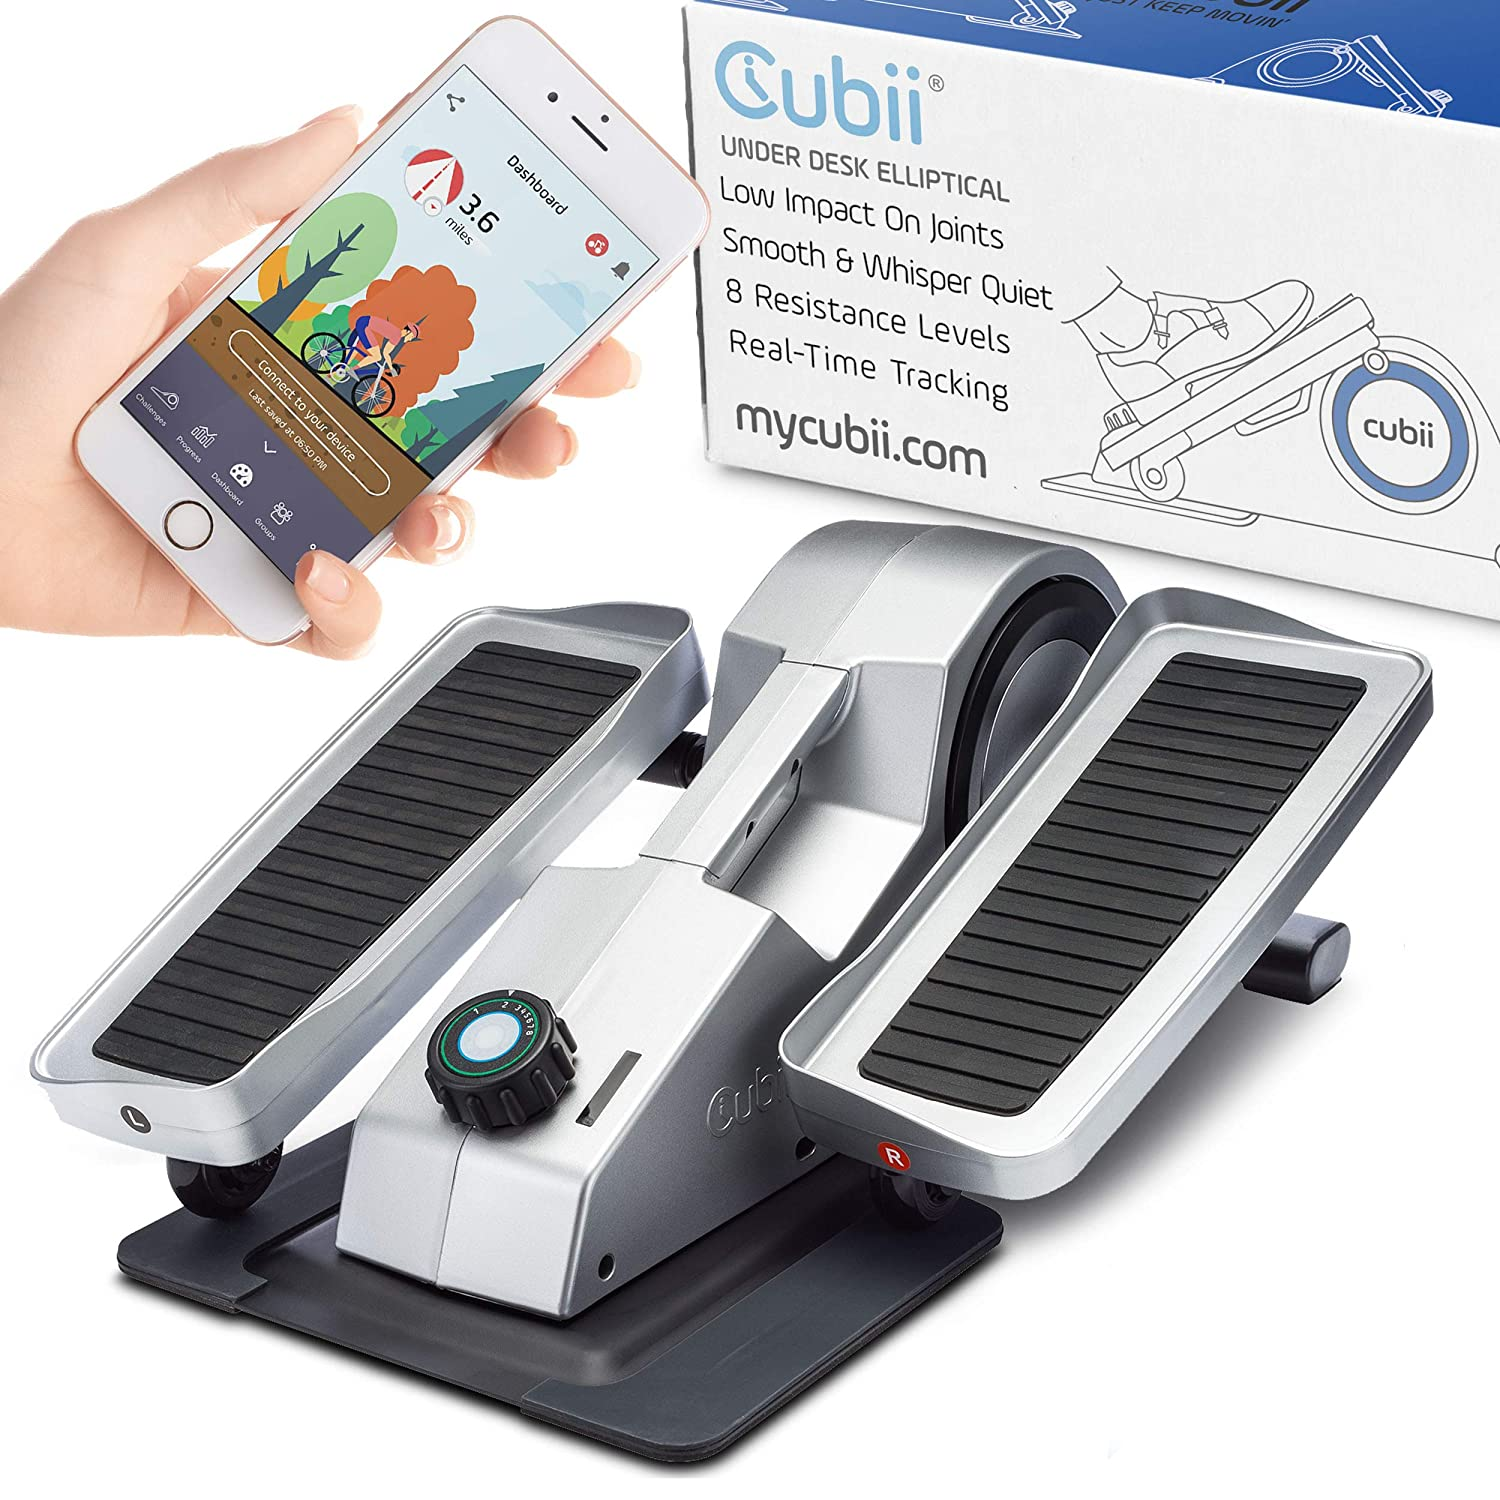 Cubii Pro Under Desk Elliptical - Best Sitting Elliptical Trainer